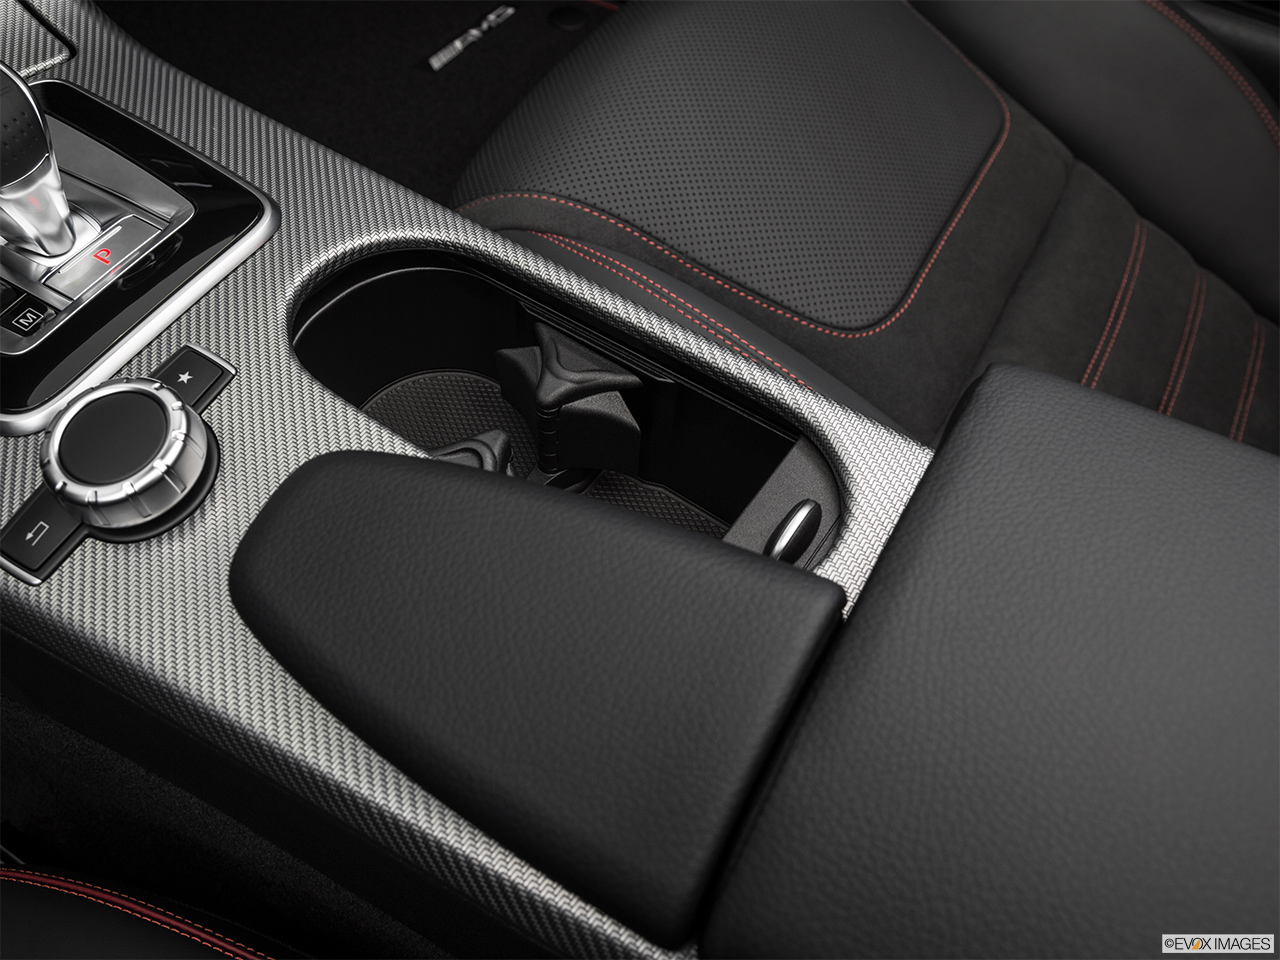 2019 Mercedes-Benz SLC-class SLC43 AMG Cup holders.